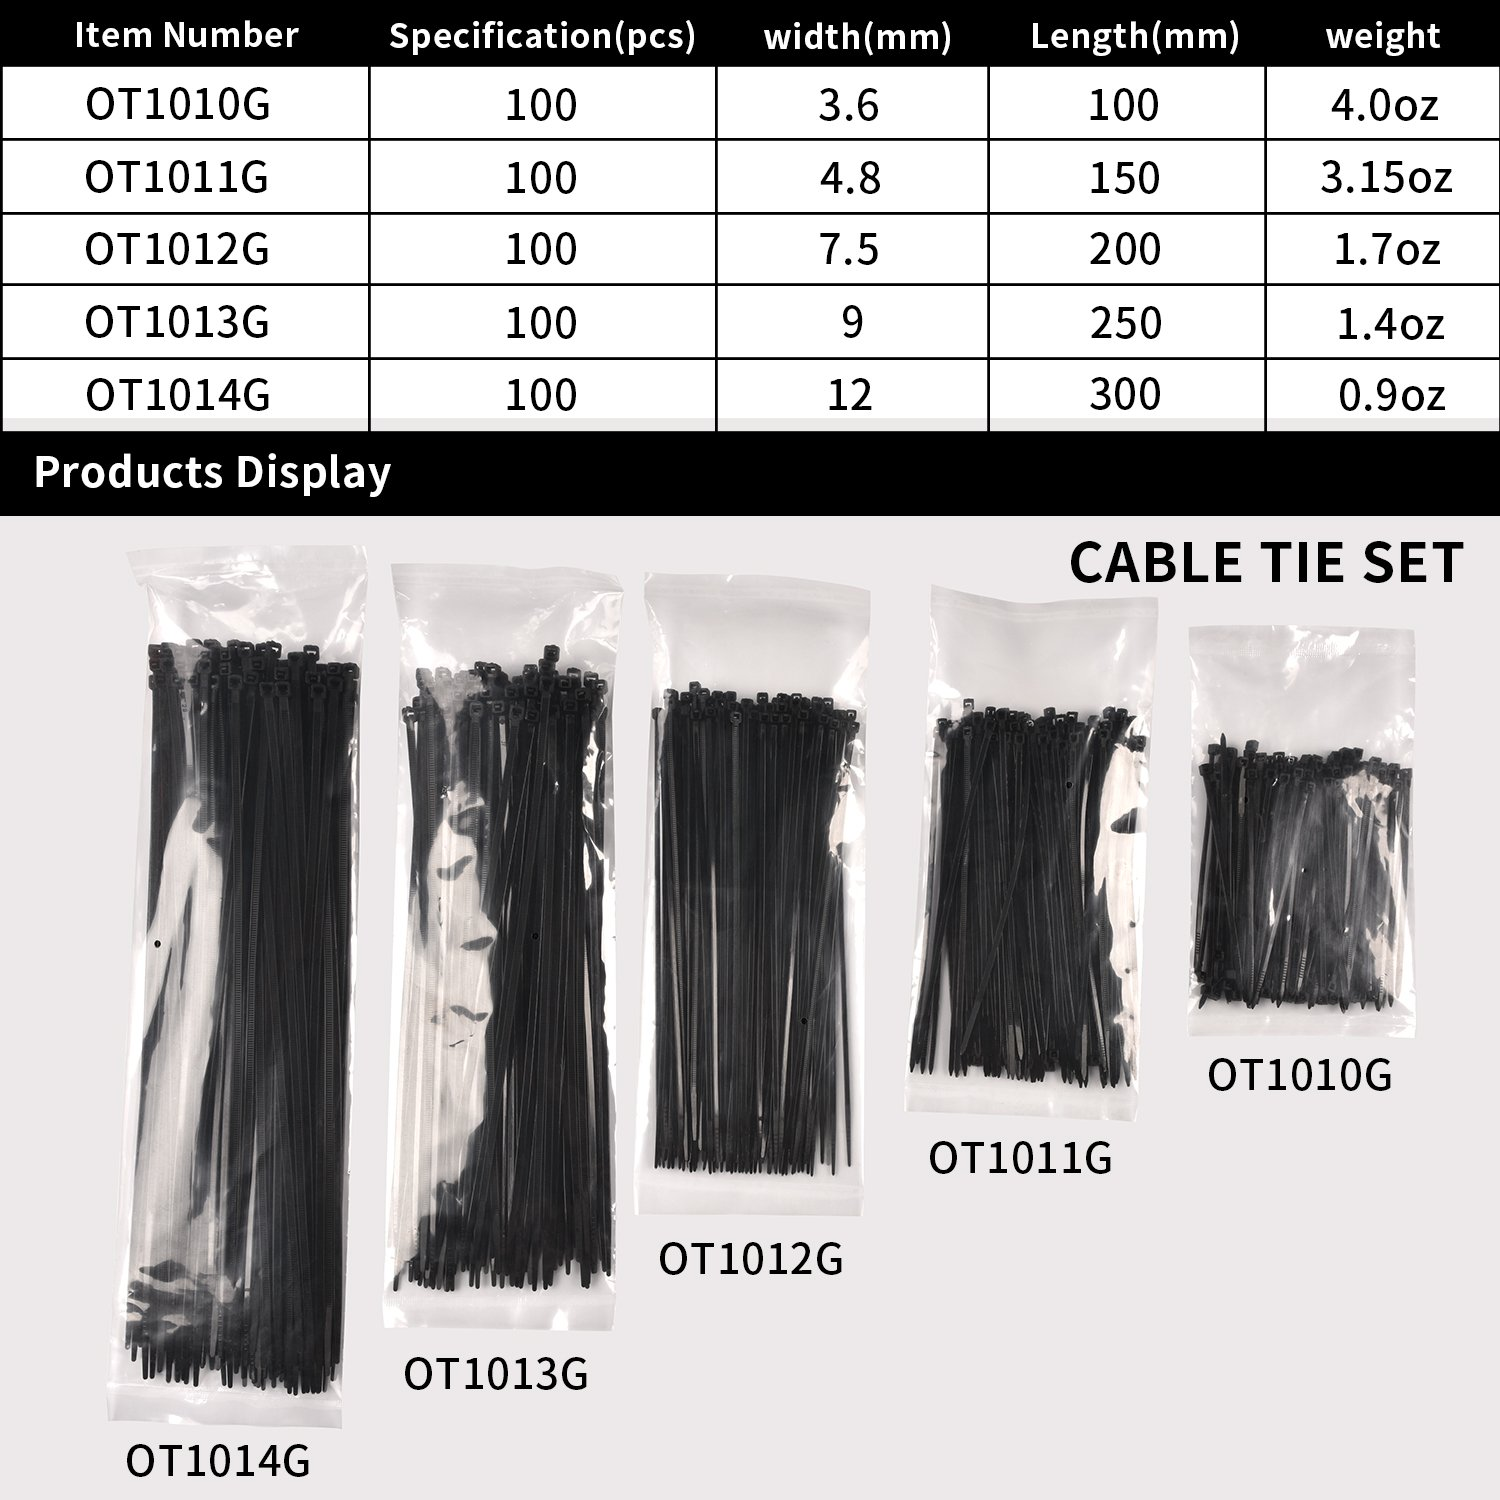 Cable Ties, HKbest Zip Ties, 500 Pcs Adjustable Durable Self locking Black Nylon Zip Cable Ties for Home Office Garage Workshop UV Resistant Heavy Duty by HKbest (Image #2)